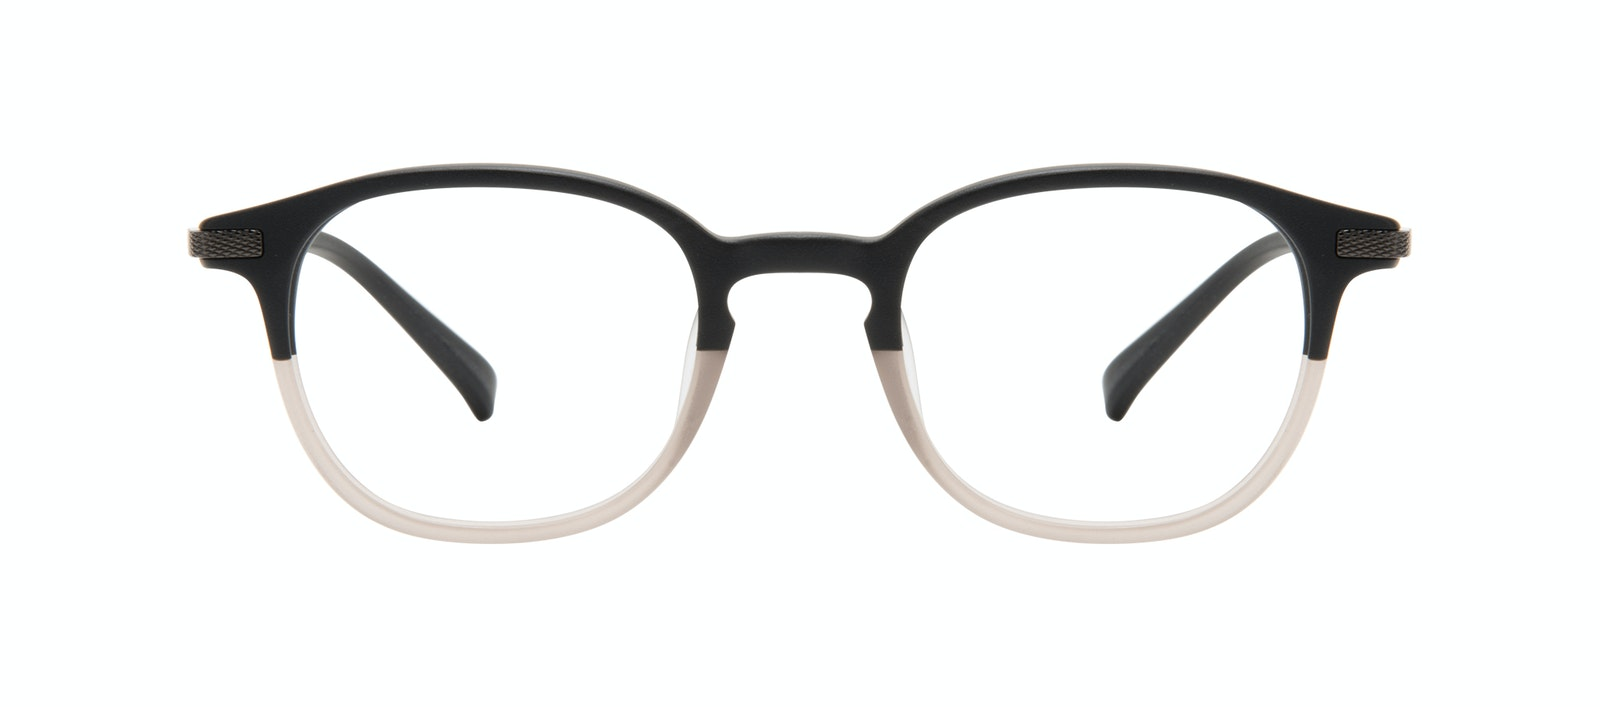 Affordable Fashion Glasses Round Eyeglasses Men Tux Wood Terra Matte Front